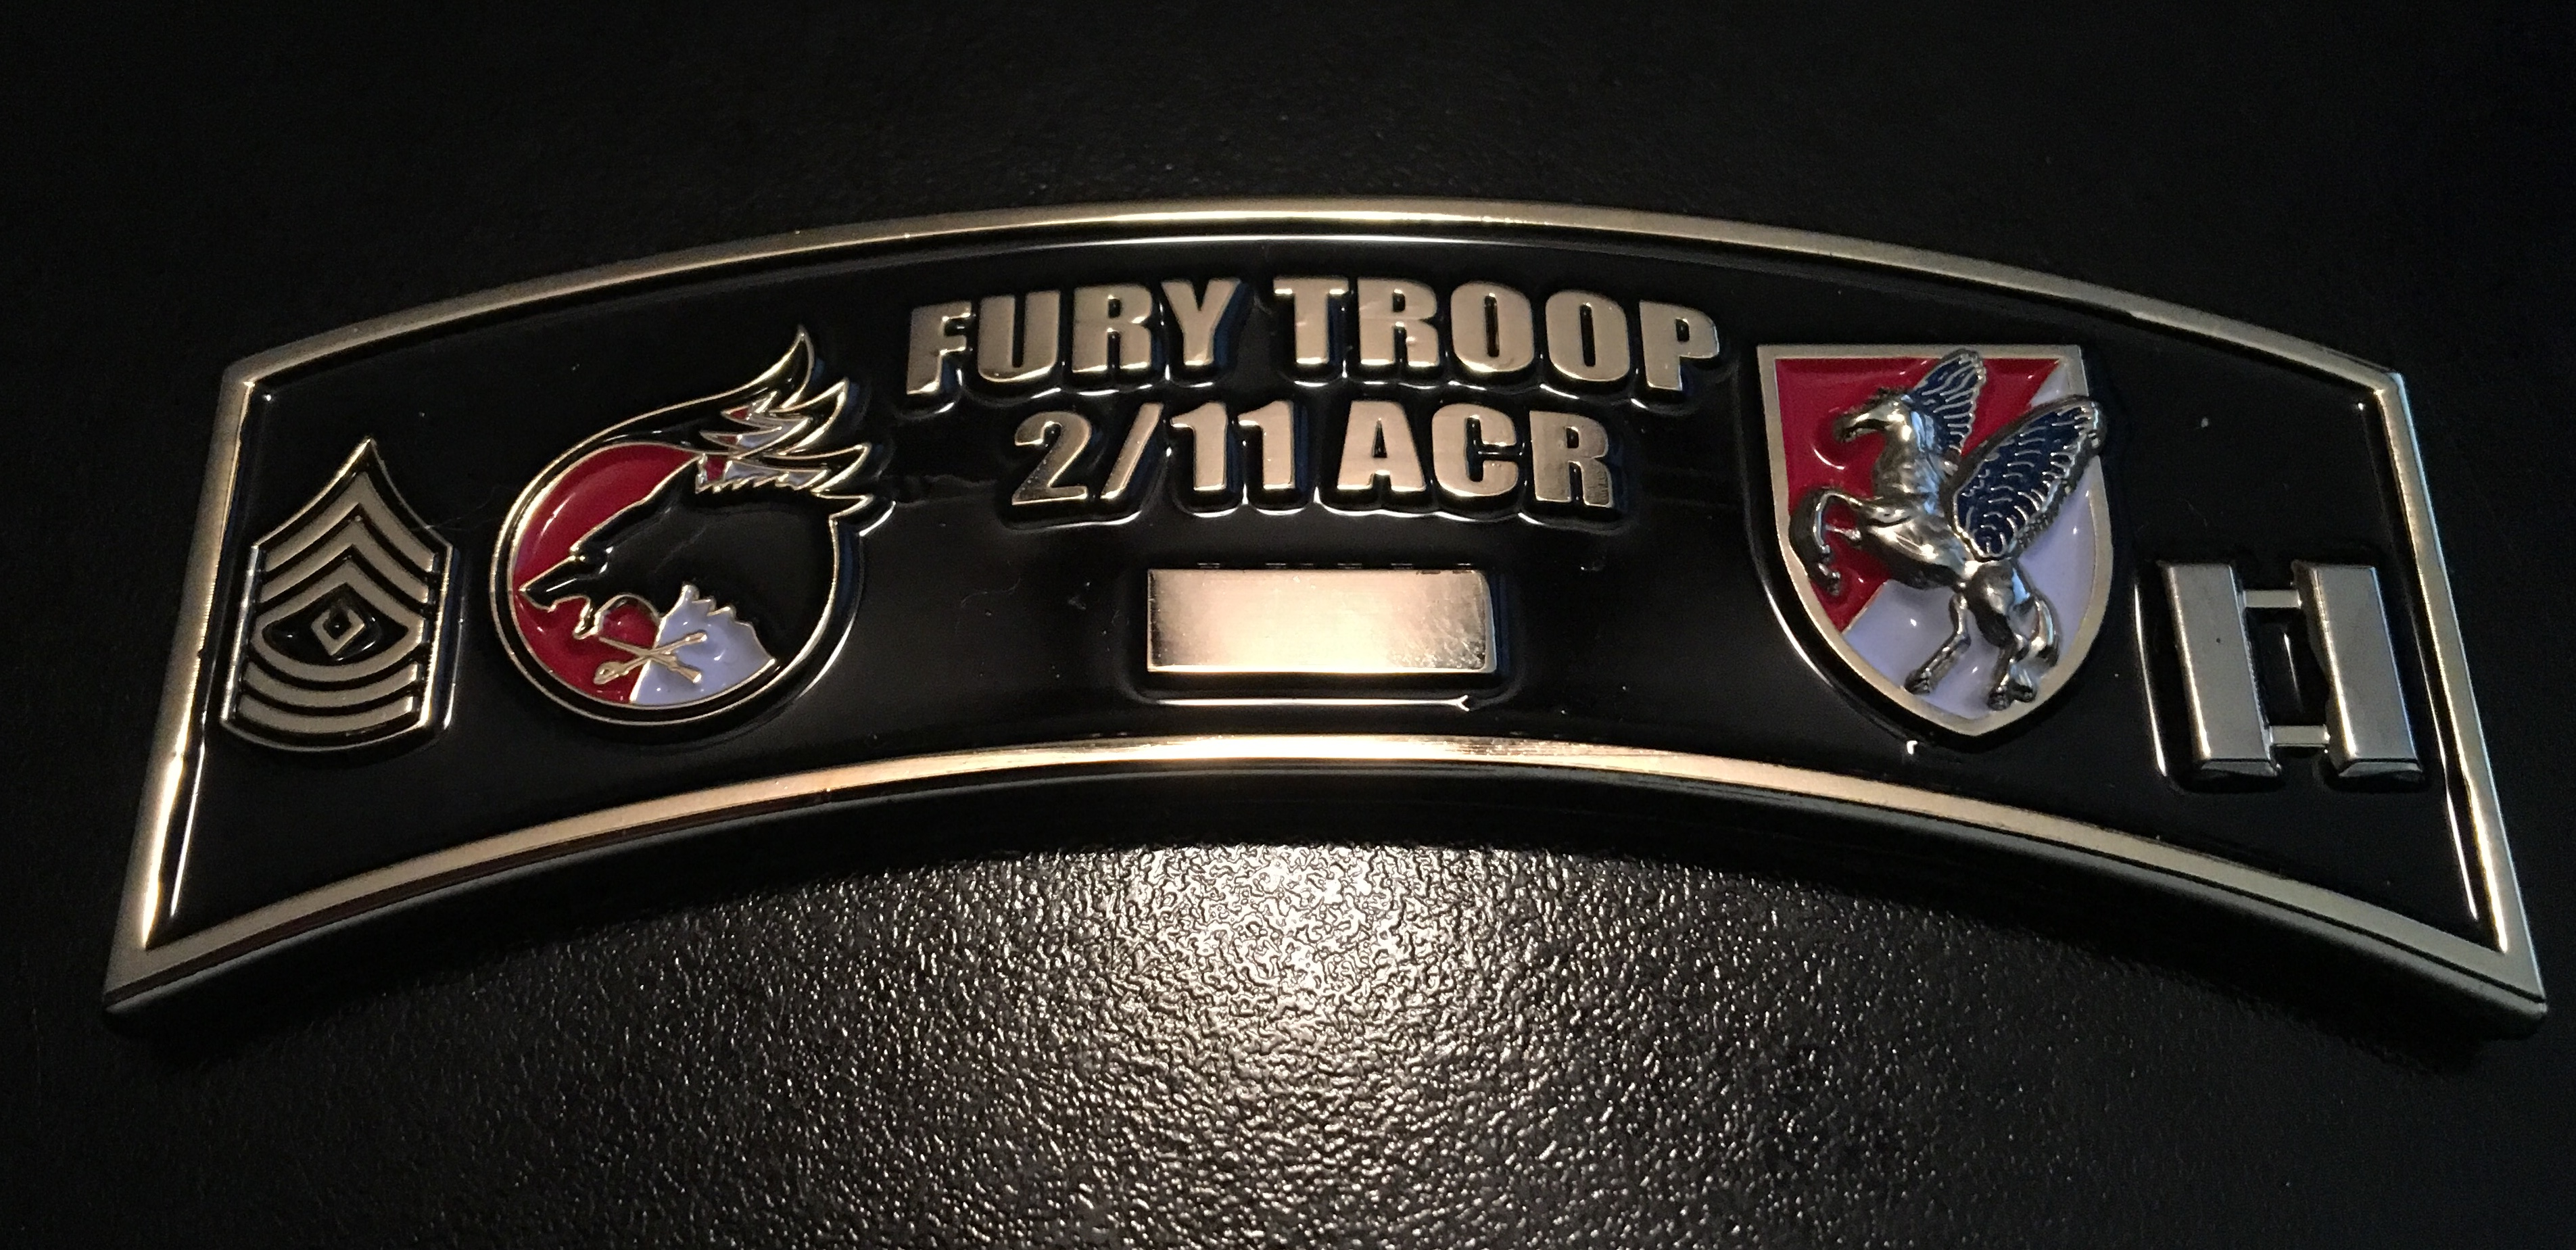 Fury Troop 2/11CAV Back